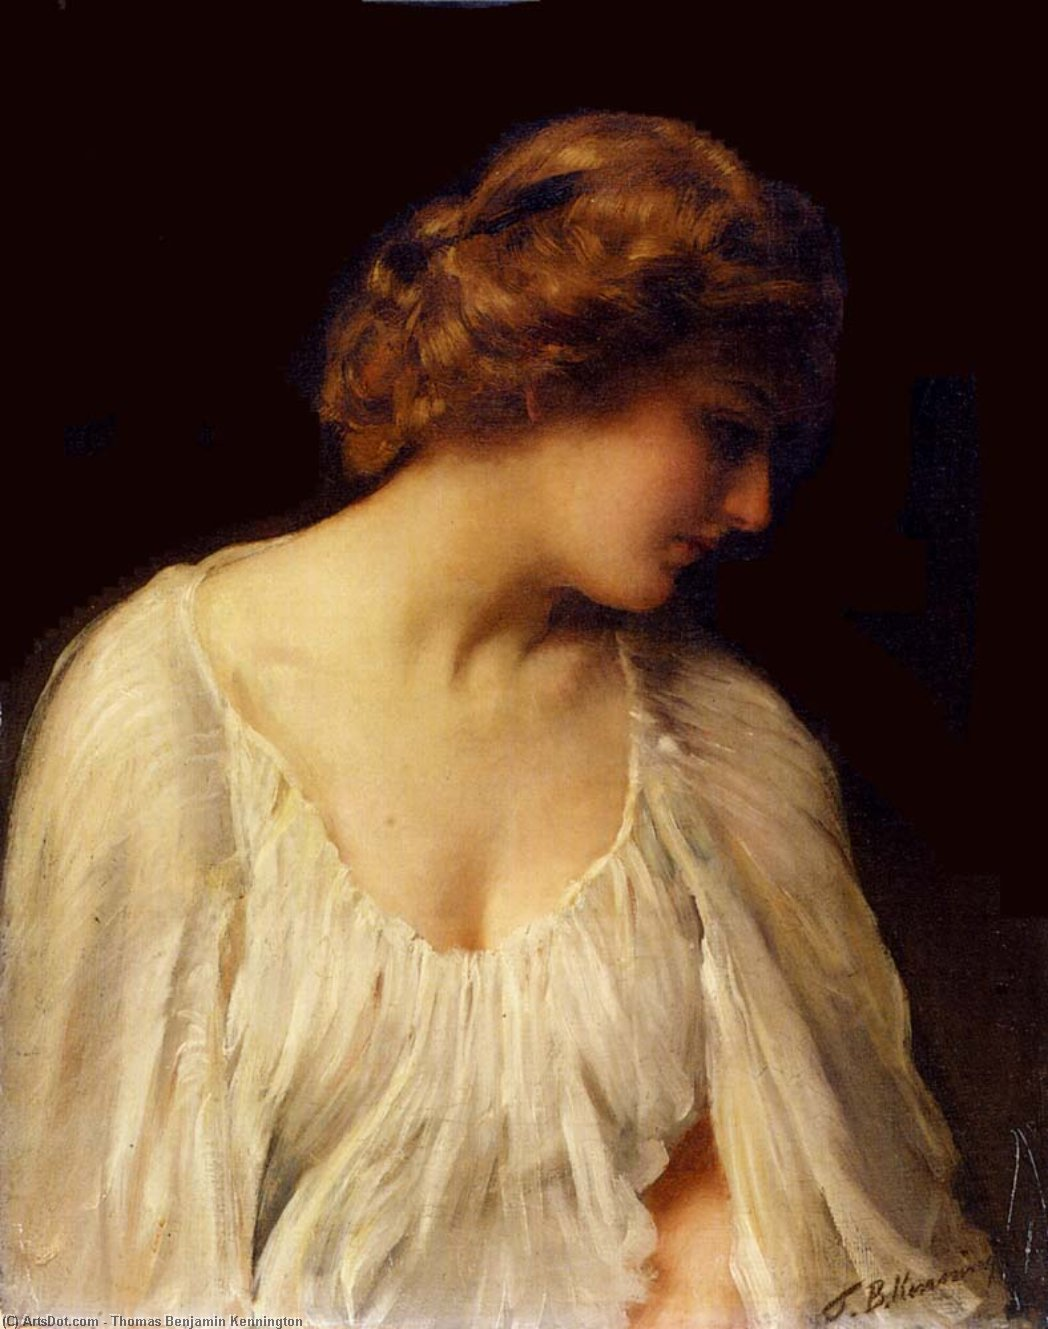 la contemplation de Thomas Benjamin Kennington (1856-1916, United Kingdom)